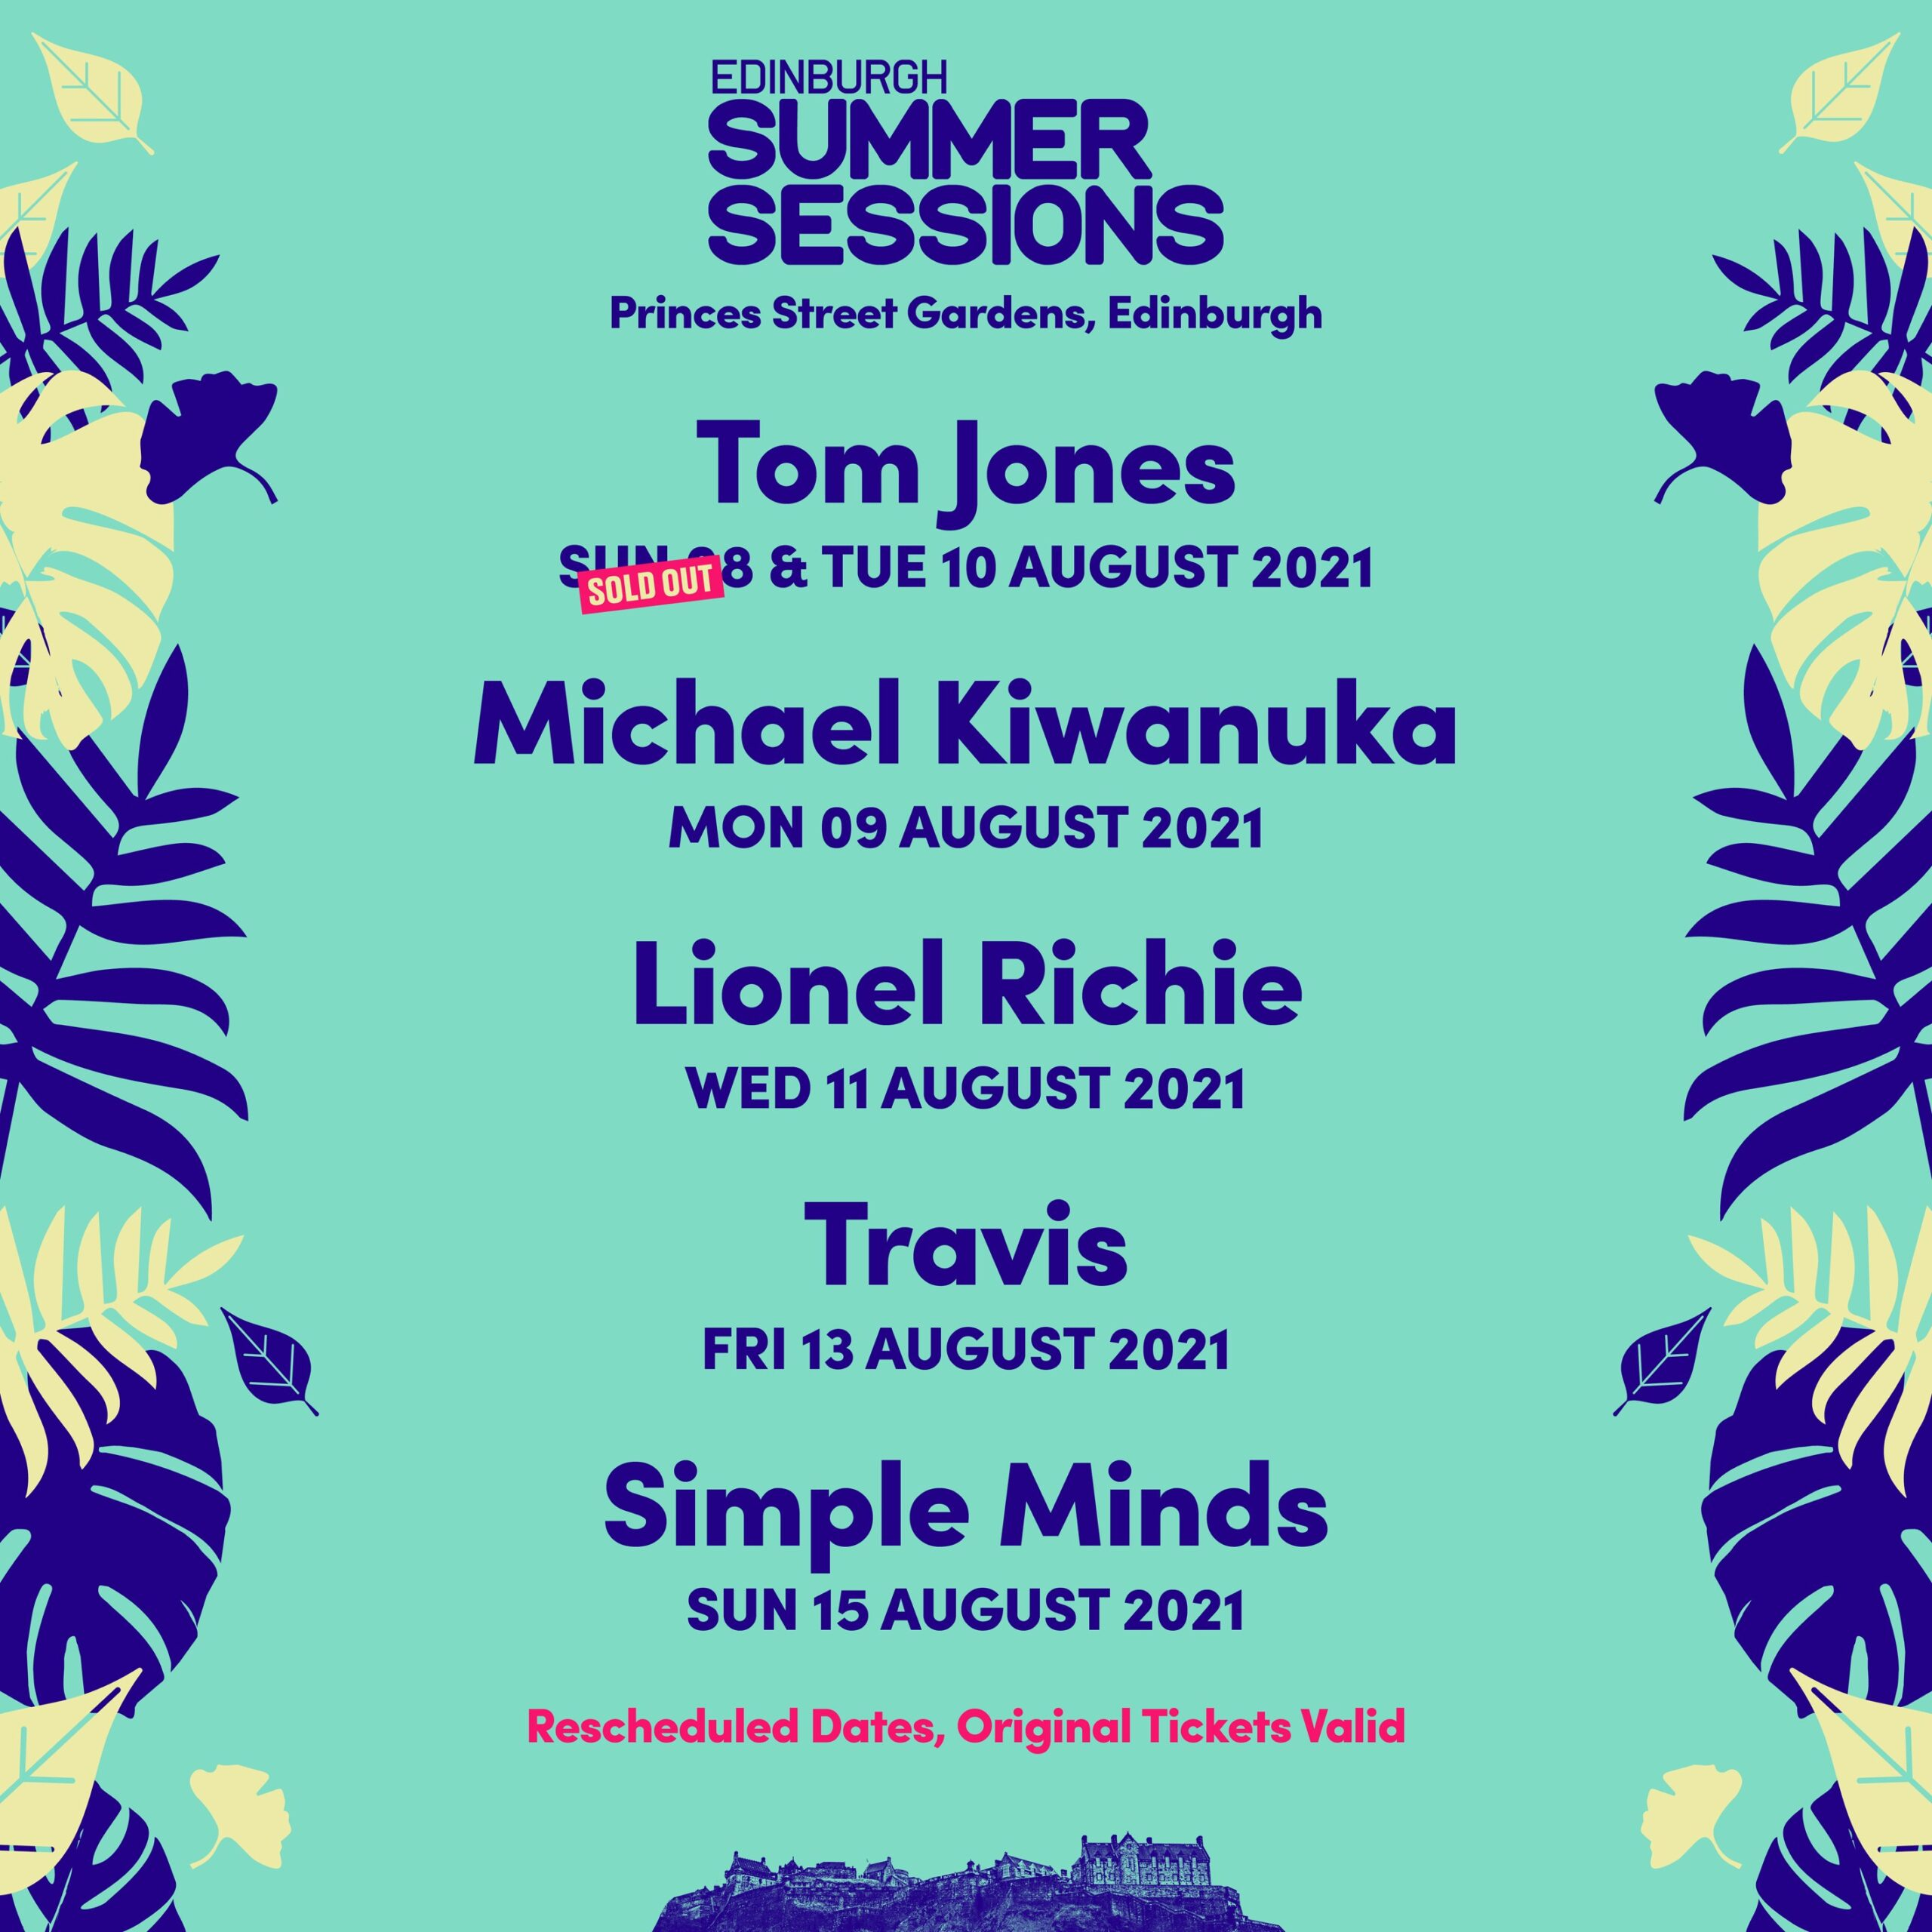 EDINBURGH SUMMER SESSIONS ANNOUNCES RESCHEDULED DATES FOR LIONEL RICHIE, MICHAEL KIWANUKA, SIMPLE MINDS,TOM JONES AND TRAVIS IN SUMMER 2021